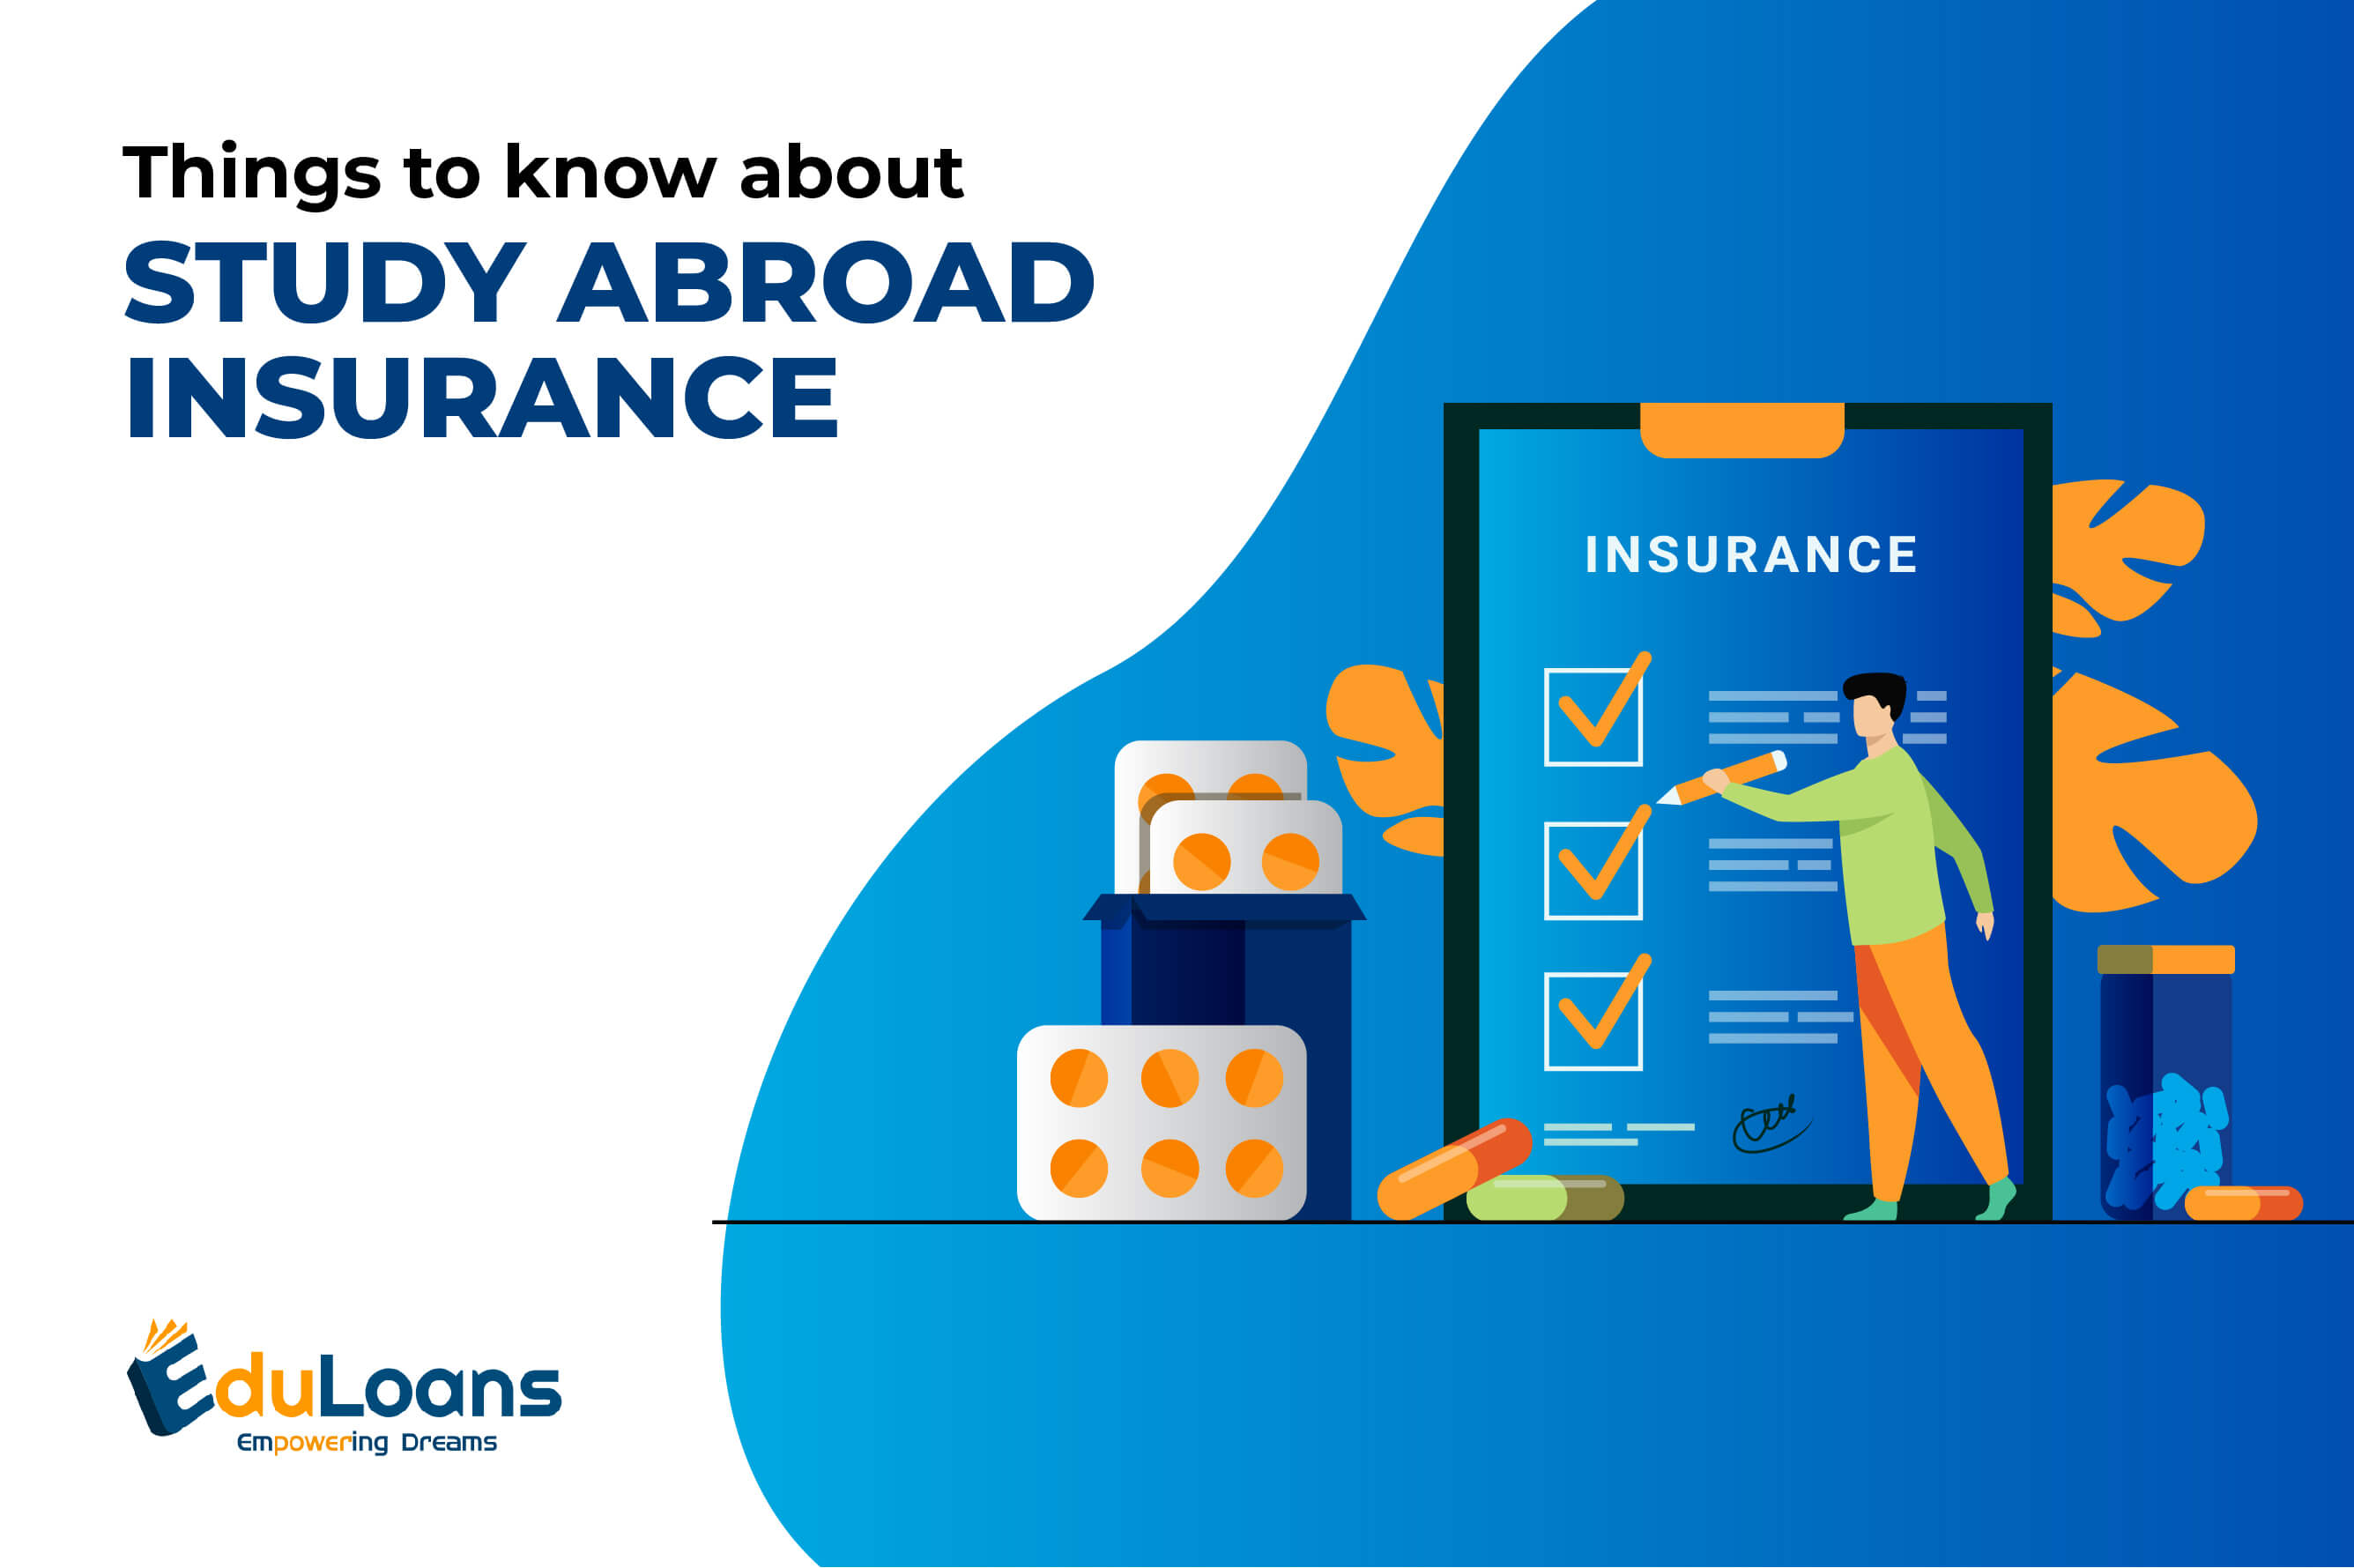 Things to know about study abroad insurance